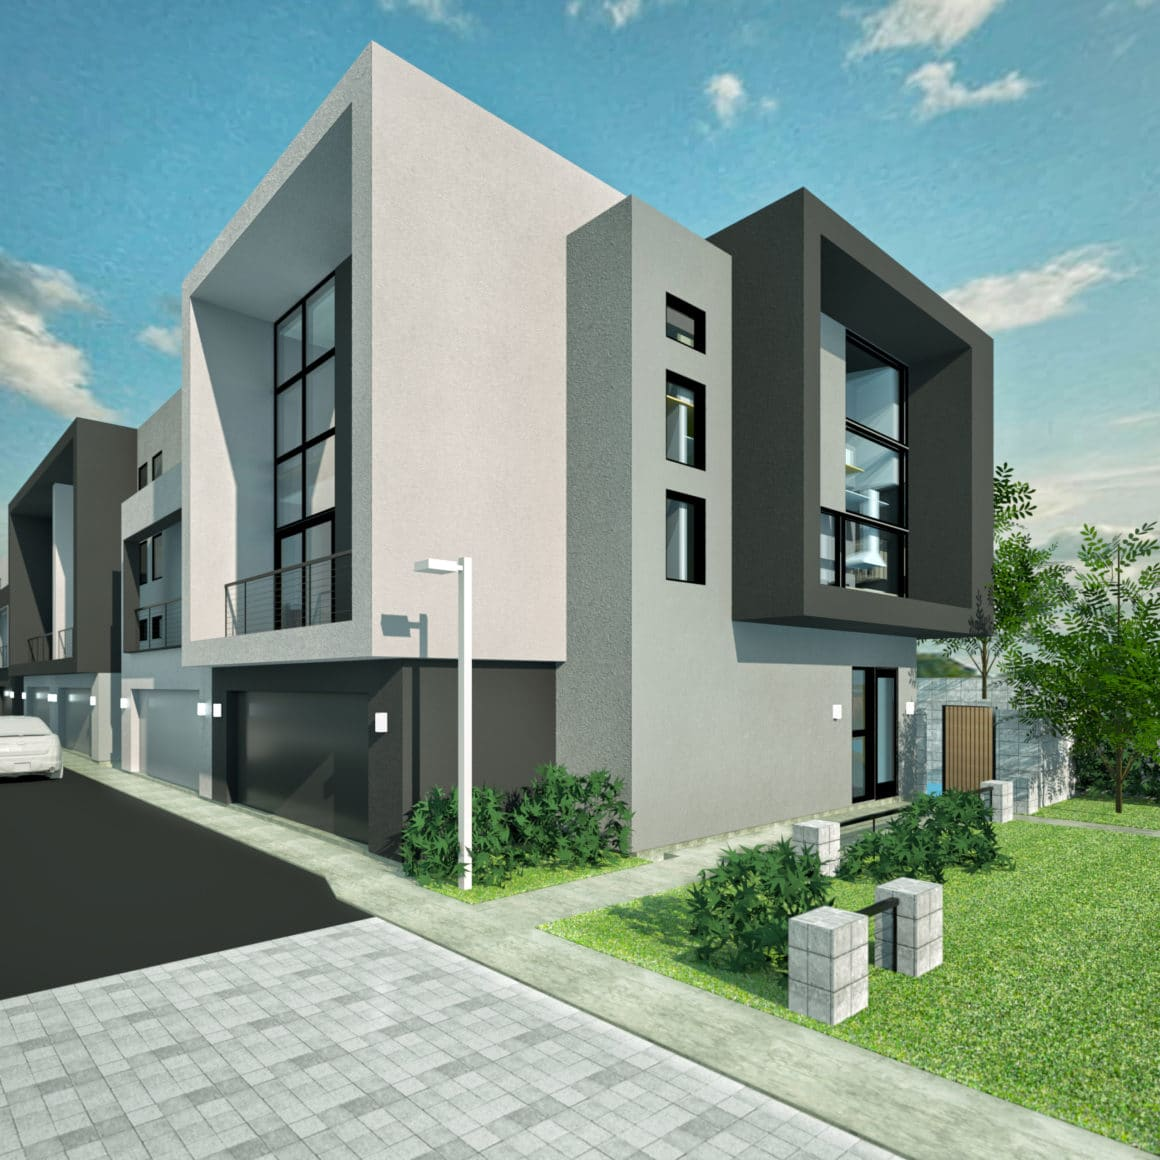 A rendering of The Roosevelt Townhomes in Tempe